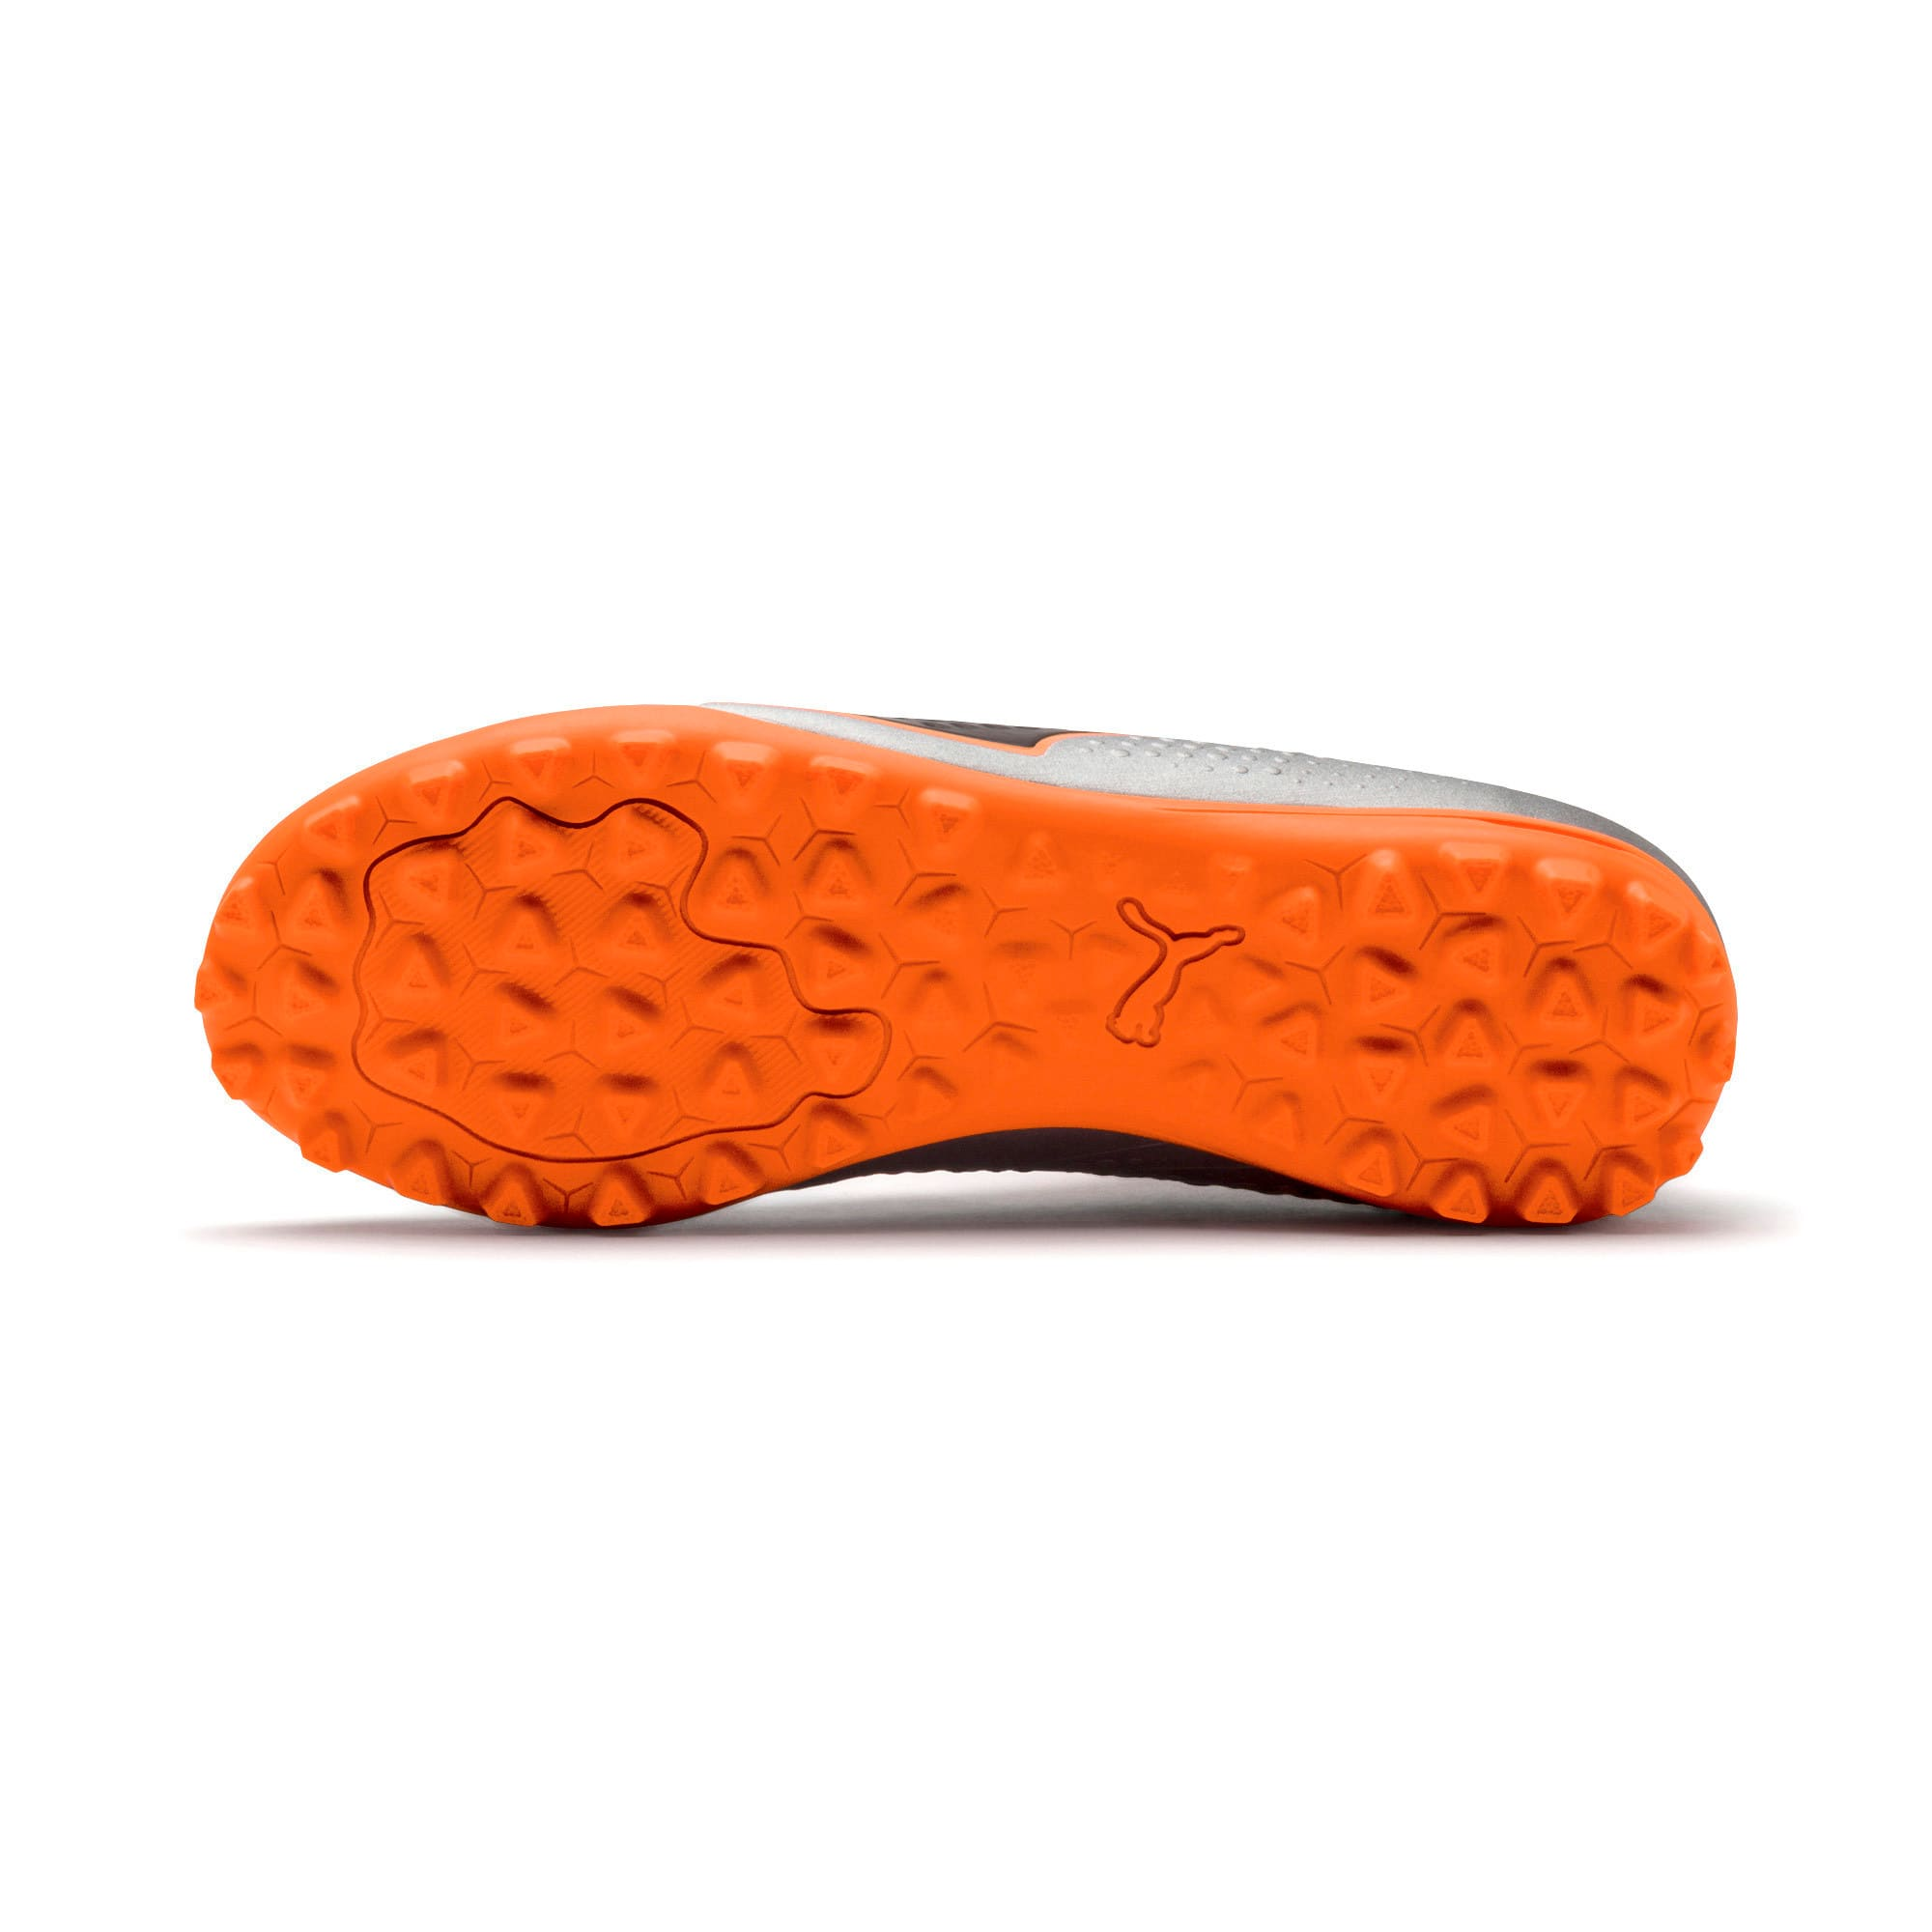 Thumbnail 4 of PUMA ONE 4 Synthetic IT Kid's Football Shoes, Silver-Orange-Black, medium-IND